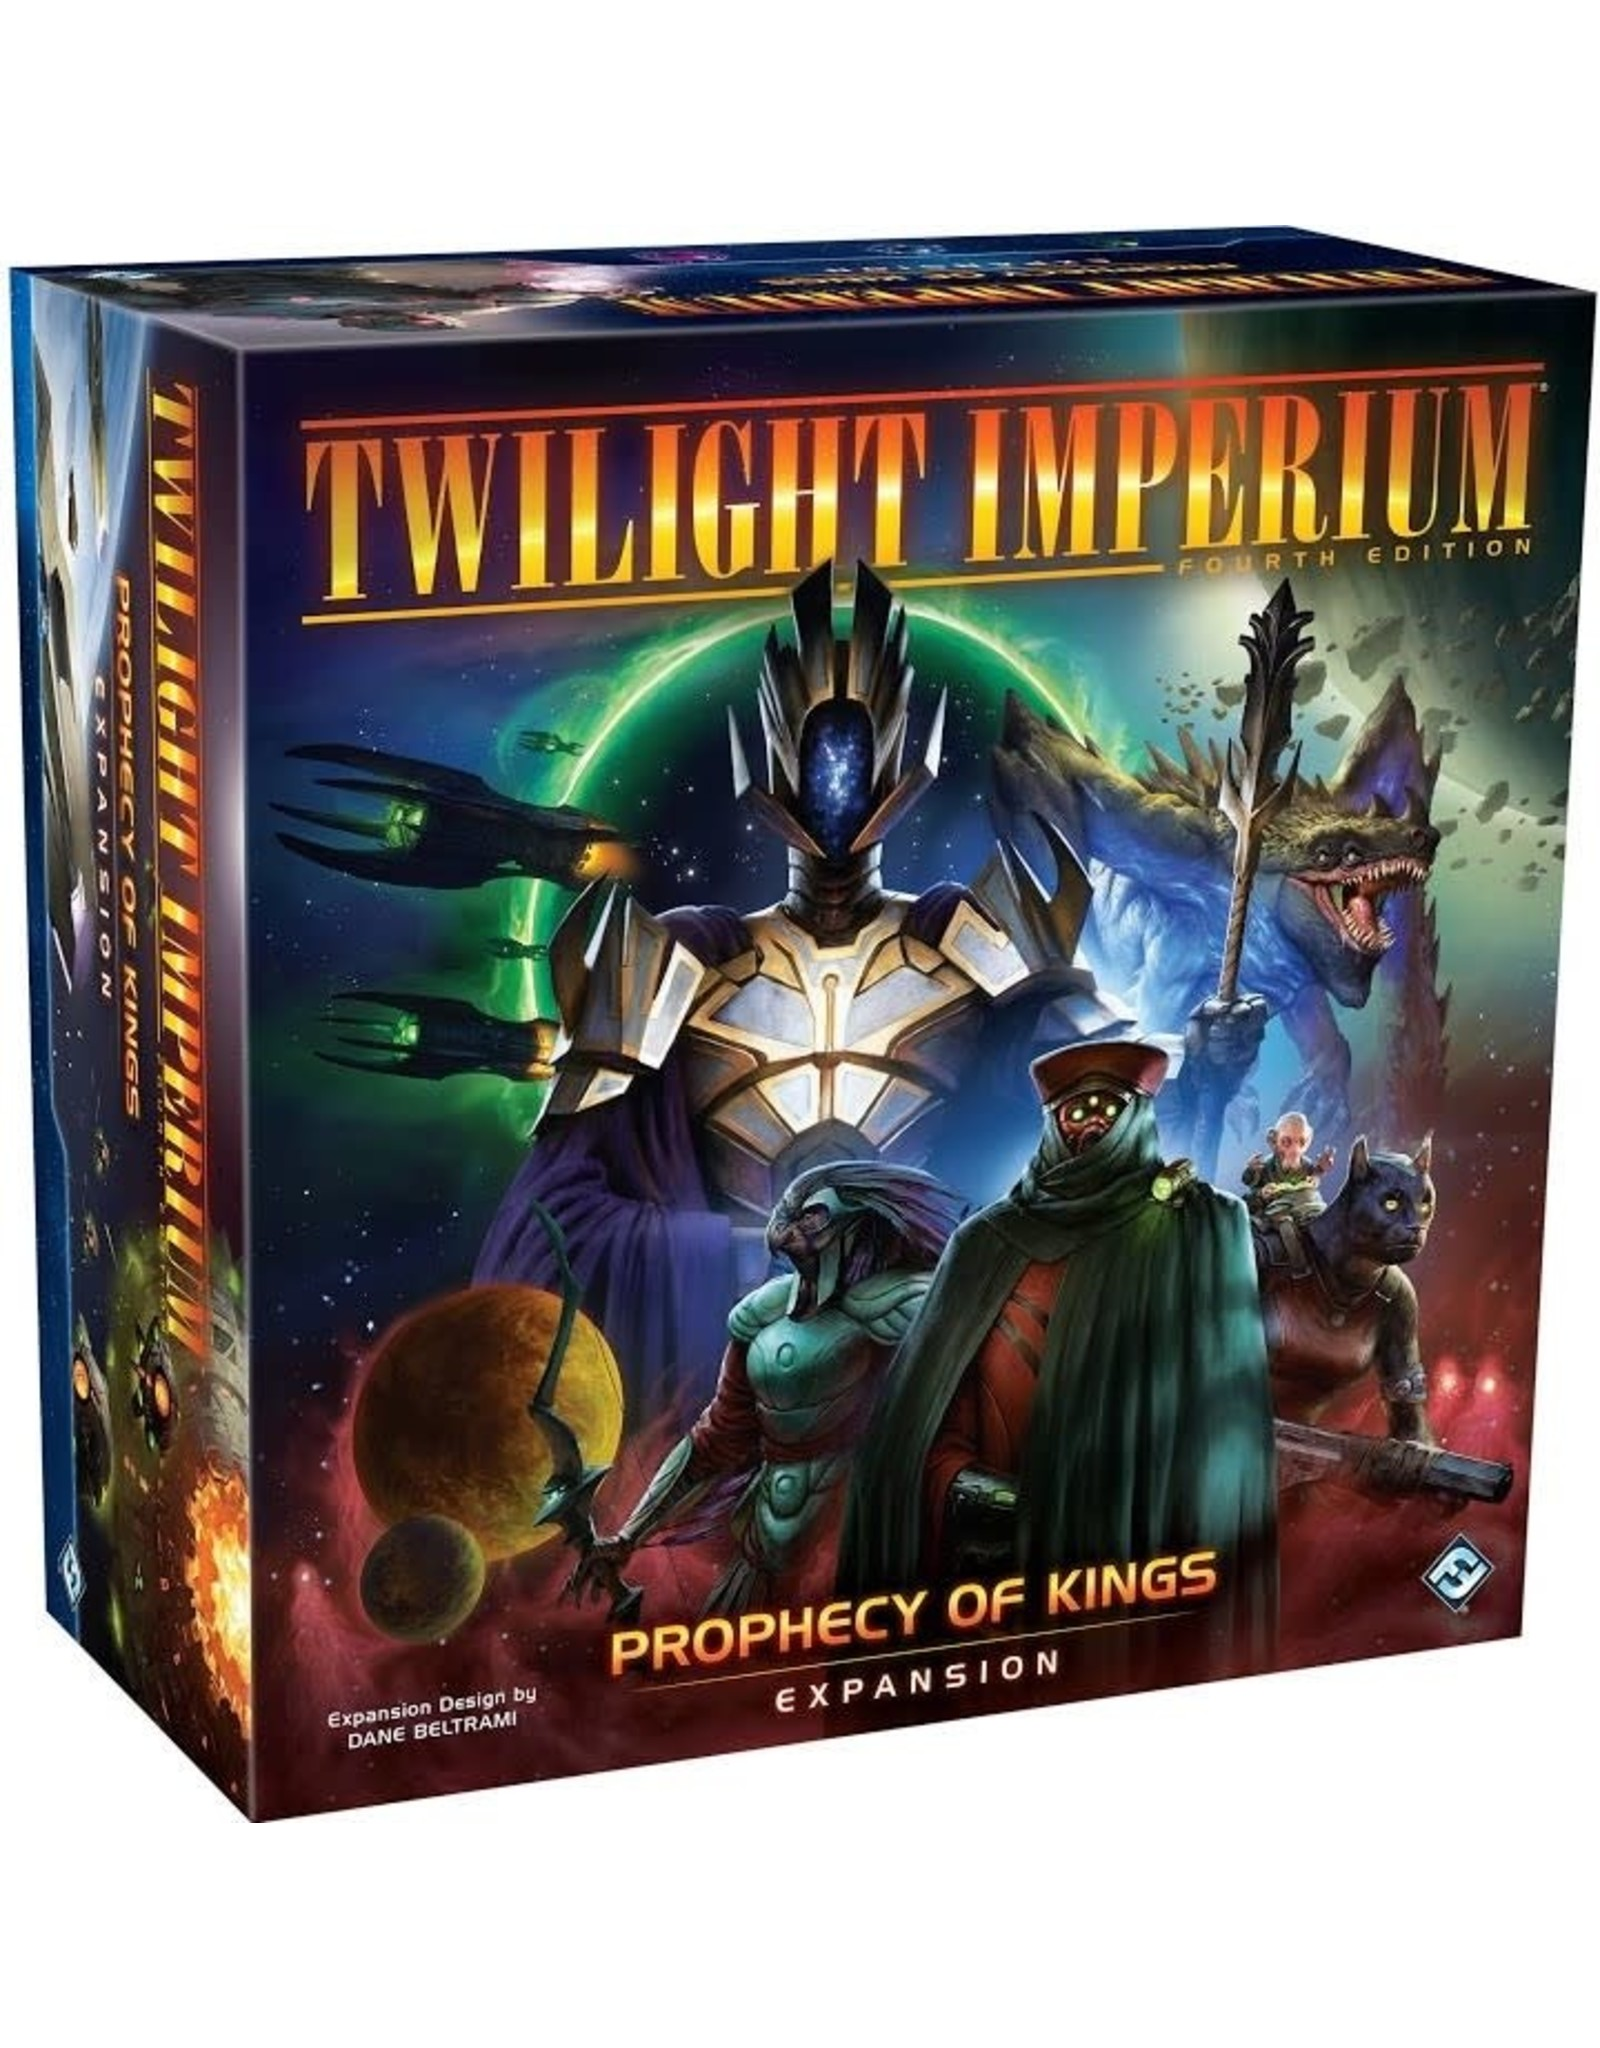 FANTASY FLIGHT GAMES TWILIGHT IMPERIUM: PROPHECY OF KINGS PRE-ORDER